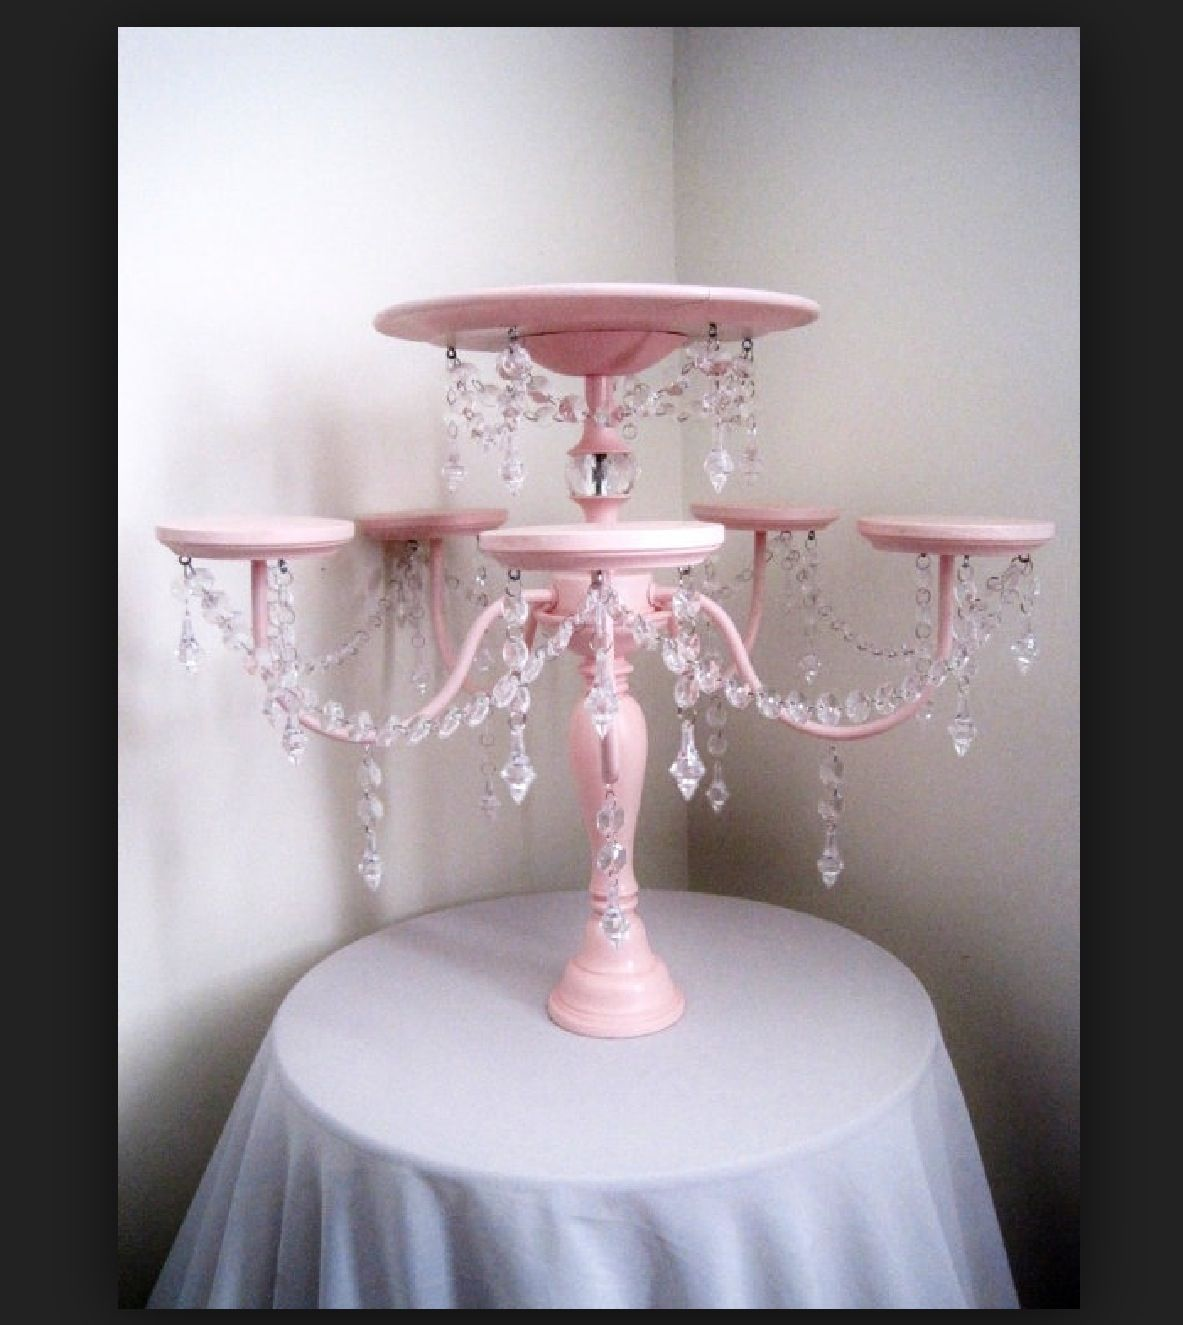 Diy cup cake stand diy cakecupcake stands pinterest cup cakes crystal chandelier cake and cupcake stand by shabulouschandeliers arubaitofo Image collections